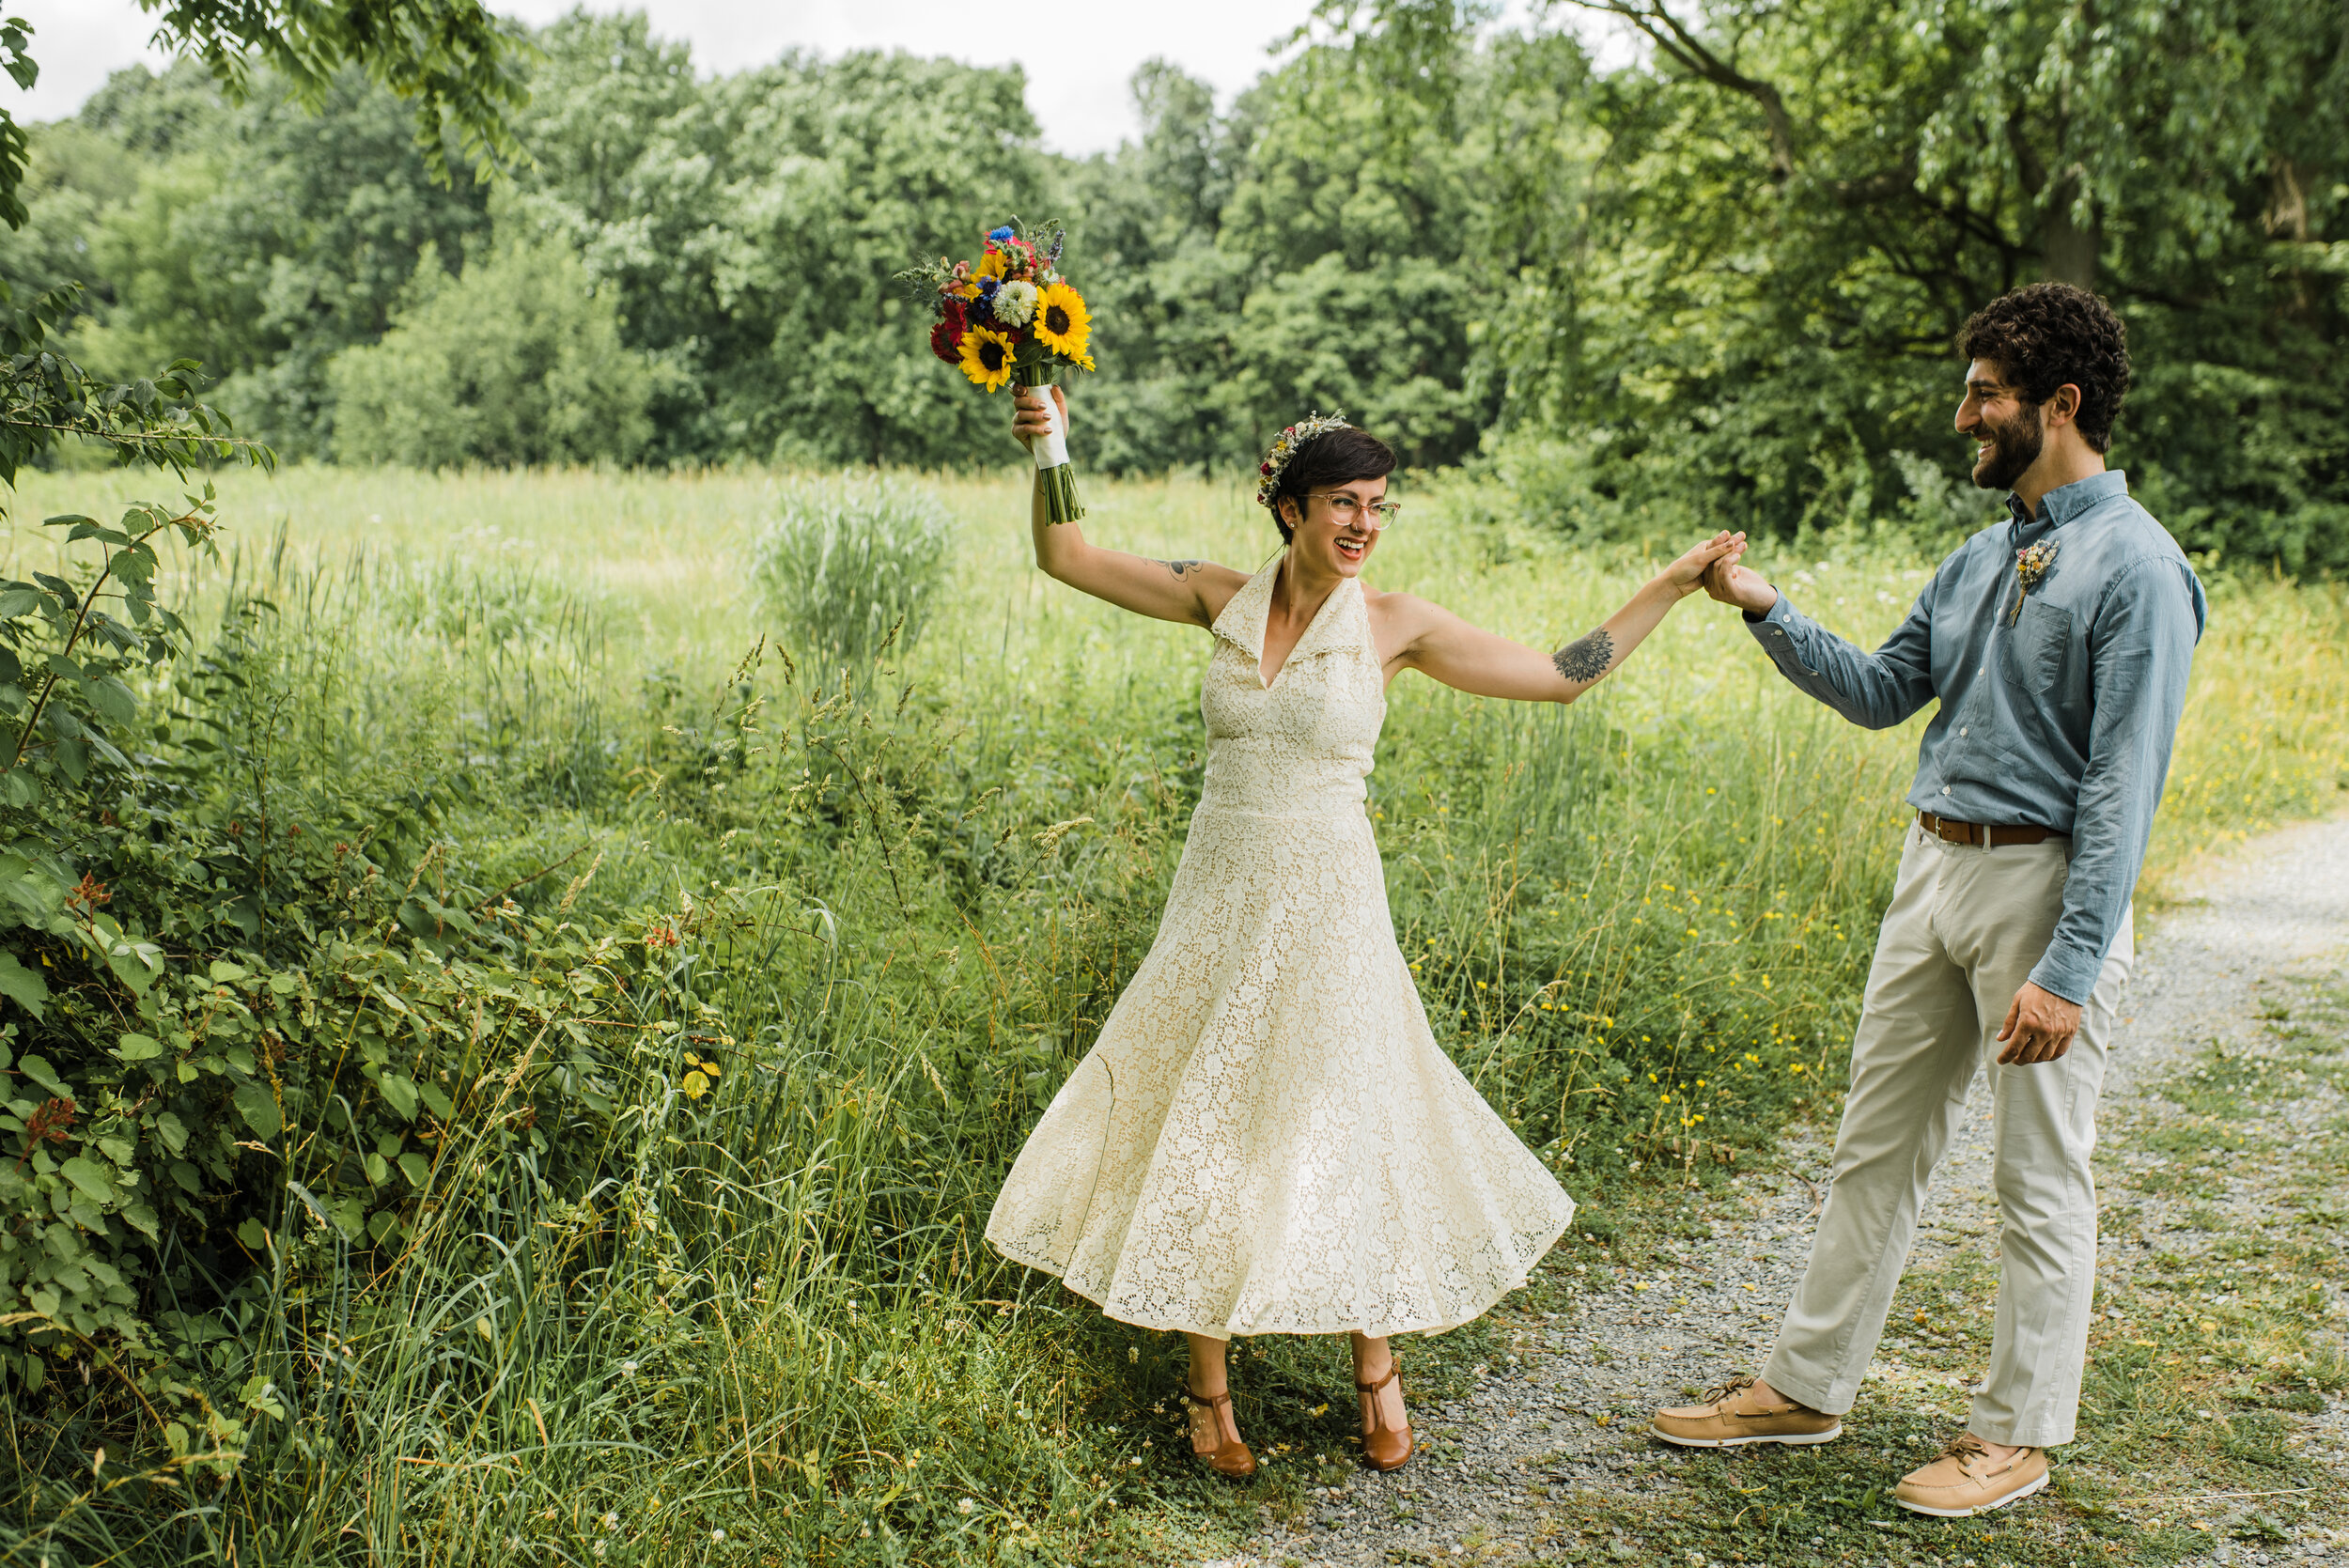 Wedding couple dancing in a field. Bride wears a vintage dress and flower crown.